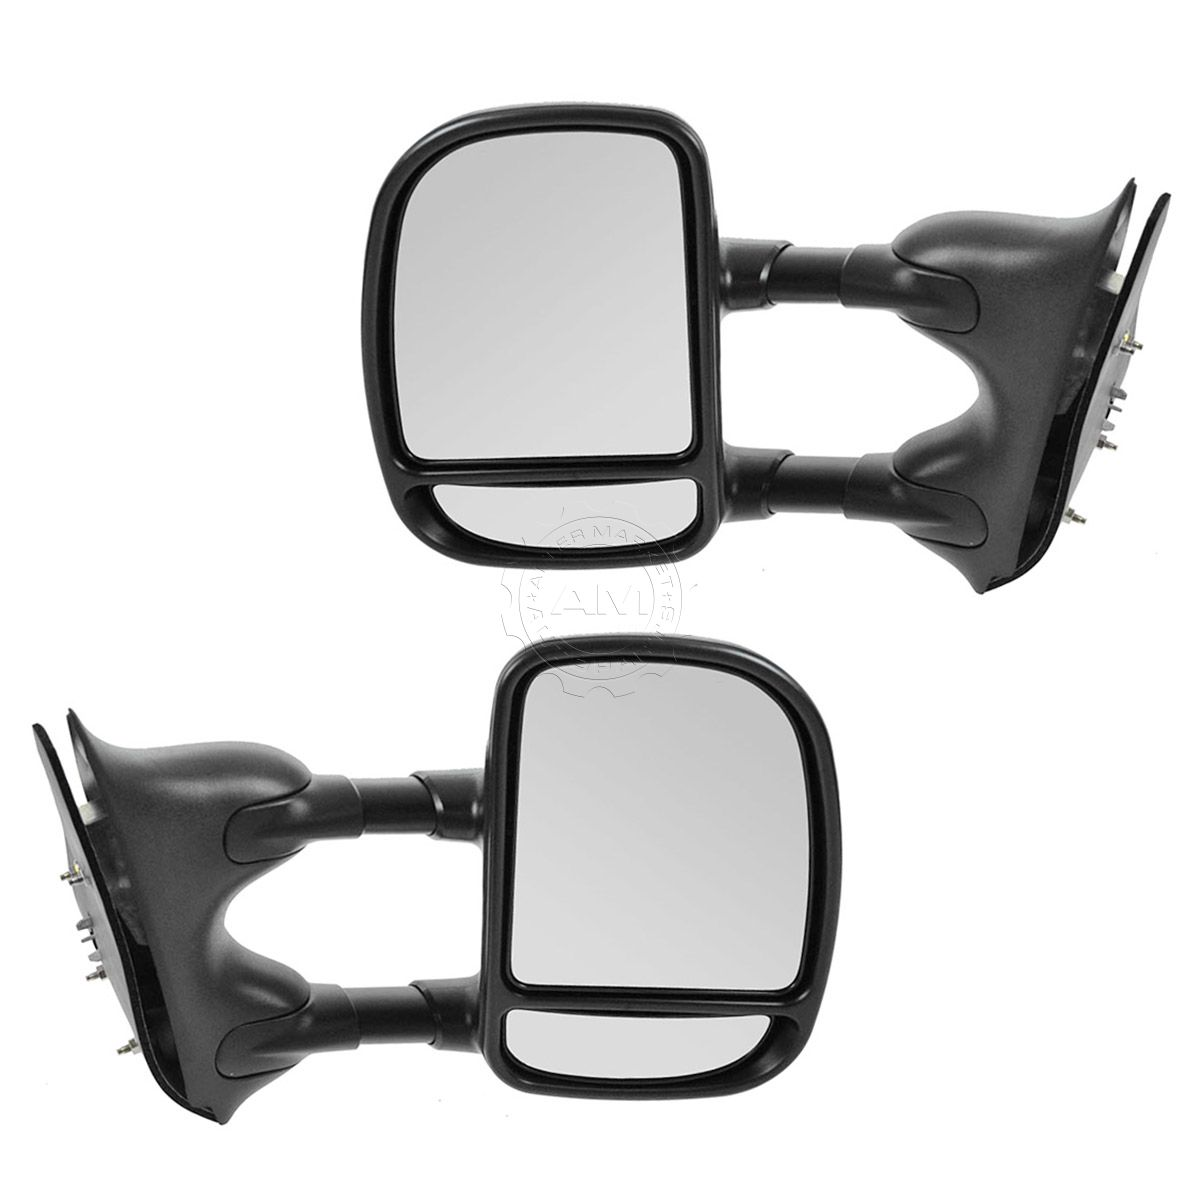 Vehicle Towing Mirrors : Towing manual side view mirrors left right pair set for